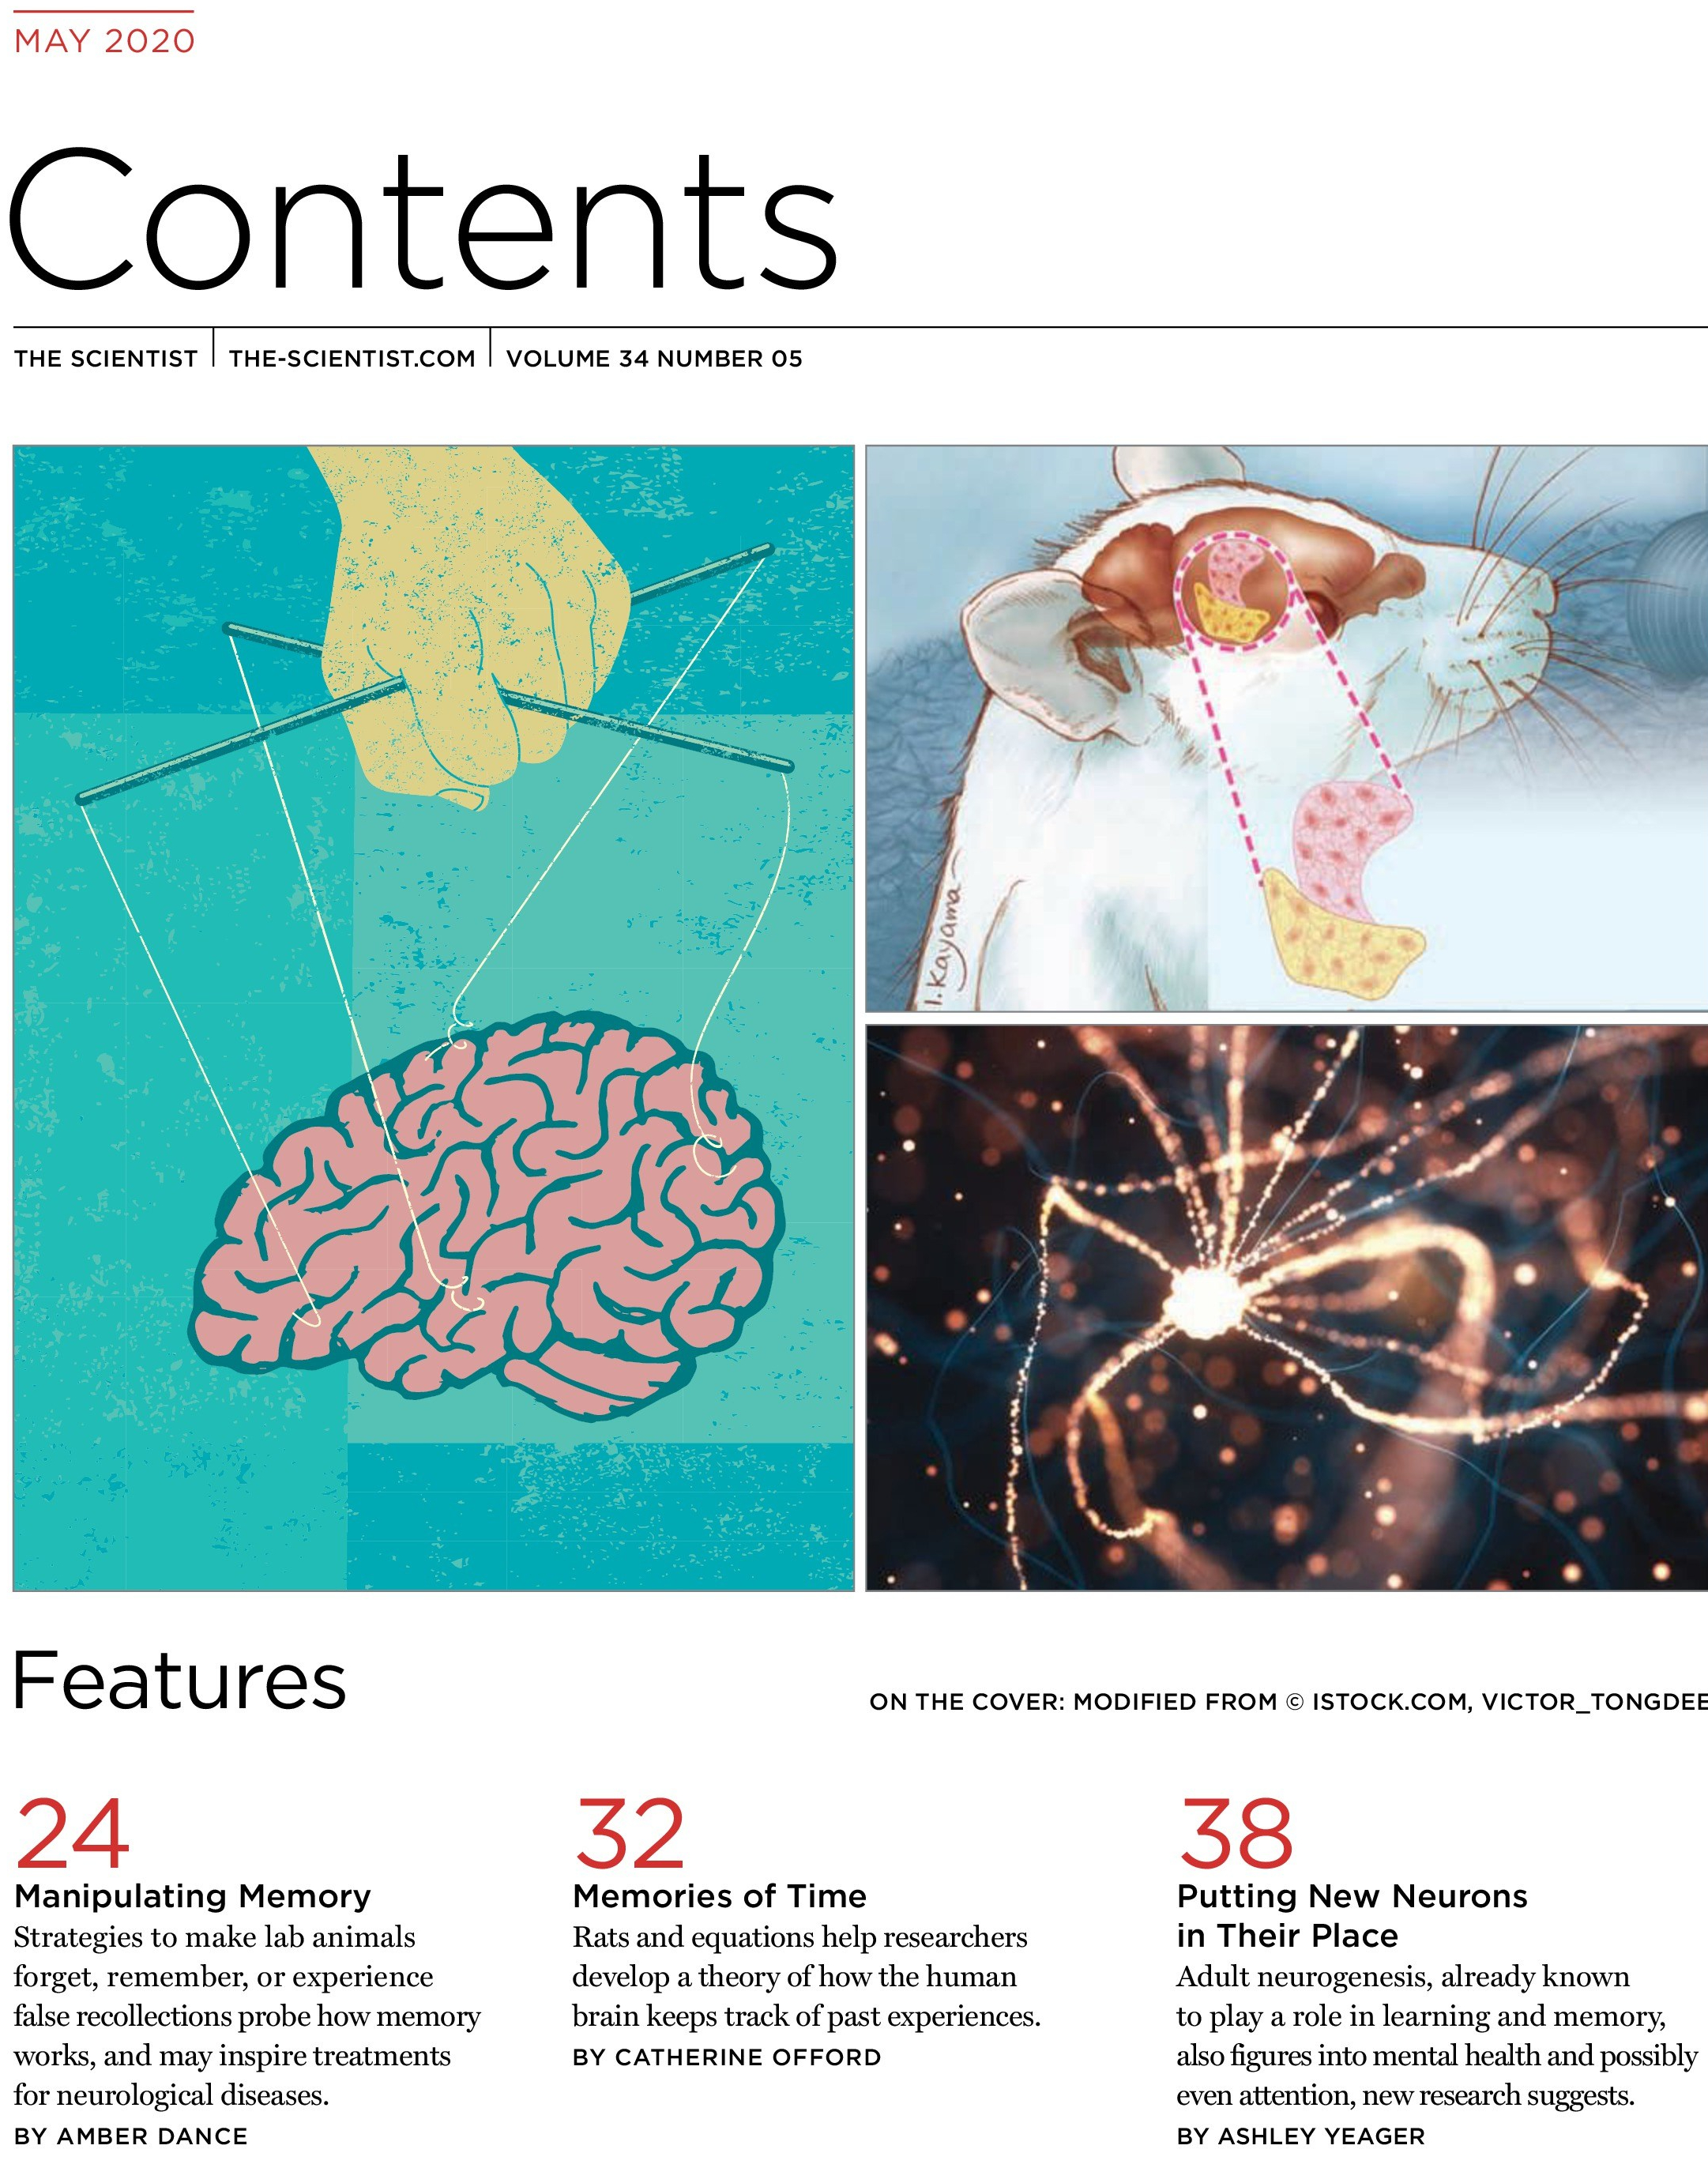 TheScientist May 2020-Table of Contents